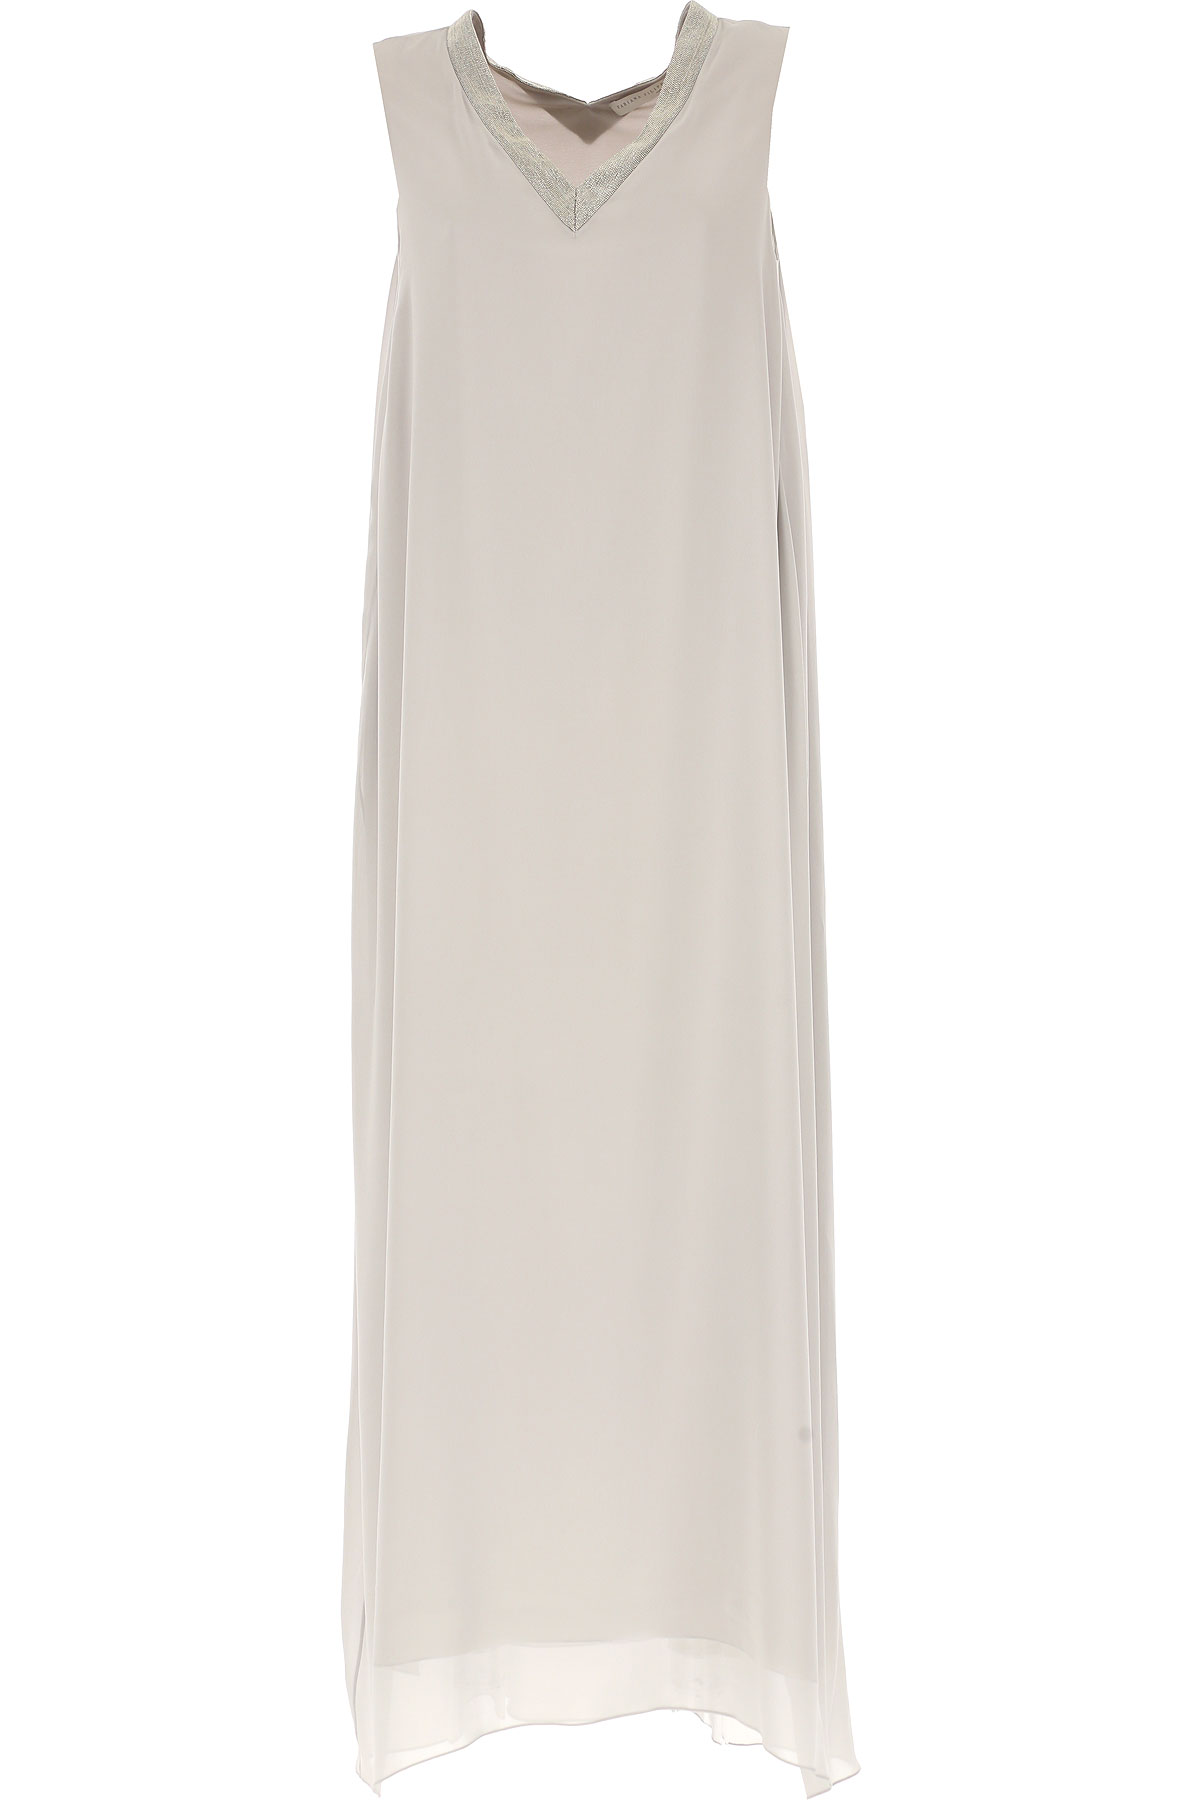 Image of Fabiana Filippi Dress for Women, Evening Cocktail Party On Sale, Grey, polyestere, 2017, 10 12 4 6 8